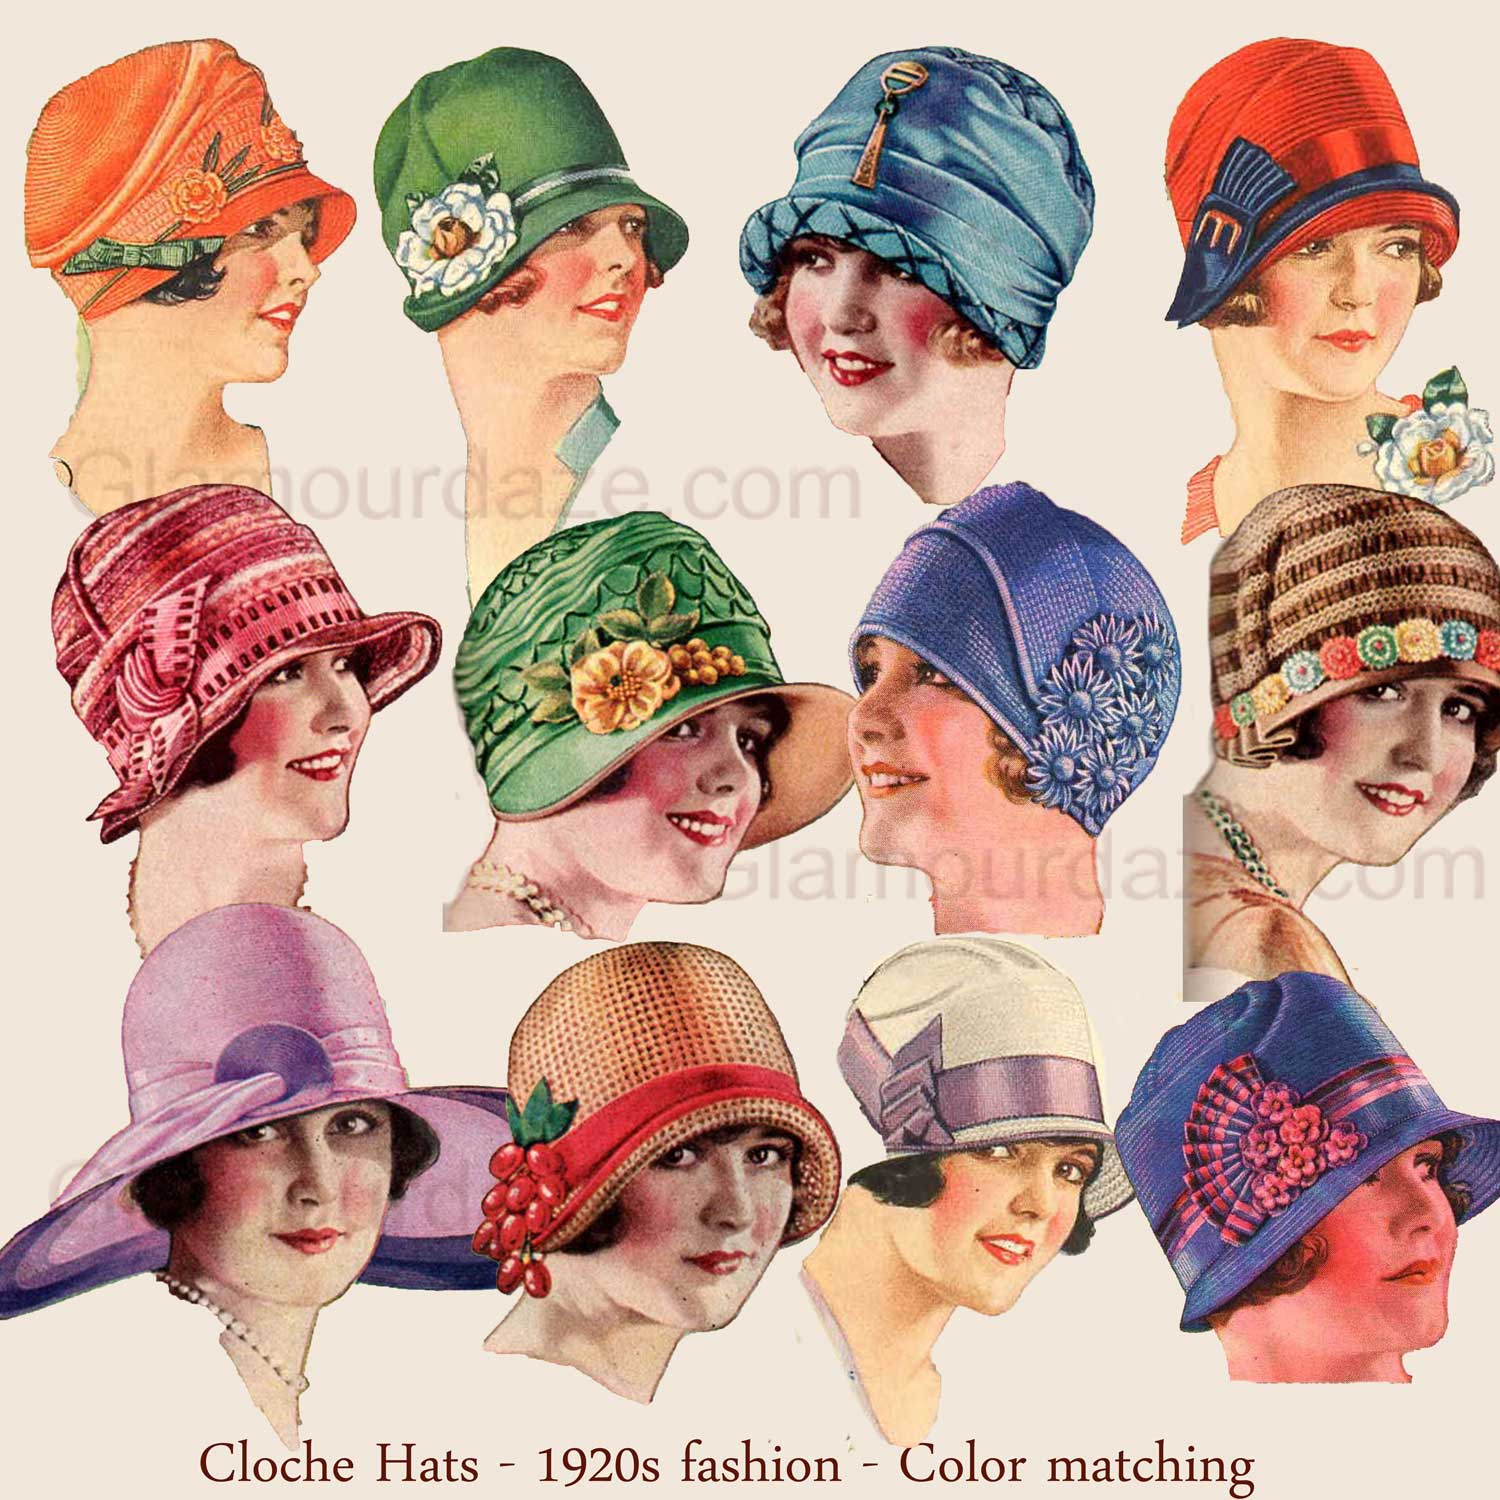 1920s-Fashion---Cloche-Hats 57b022b8f0d